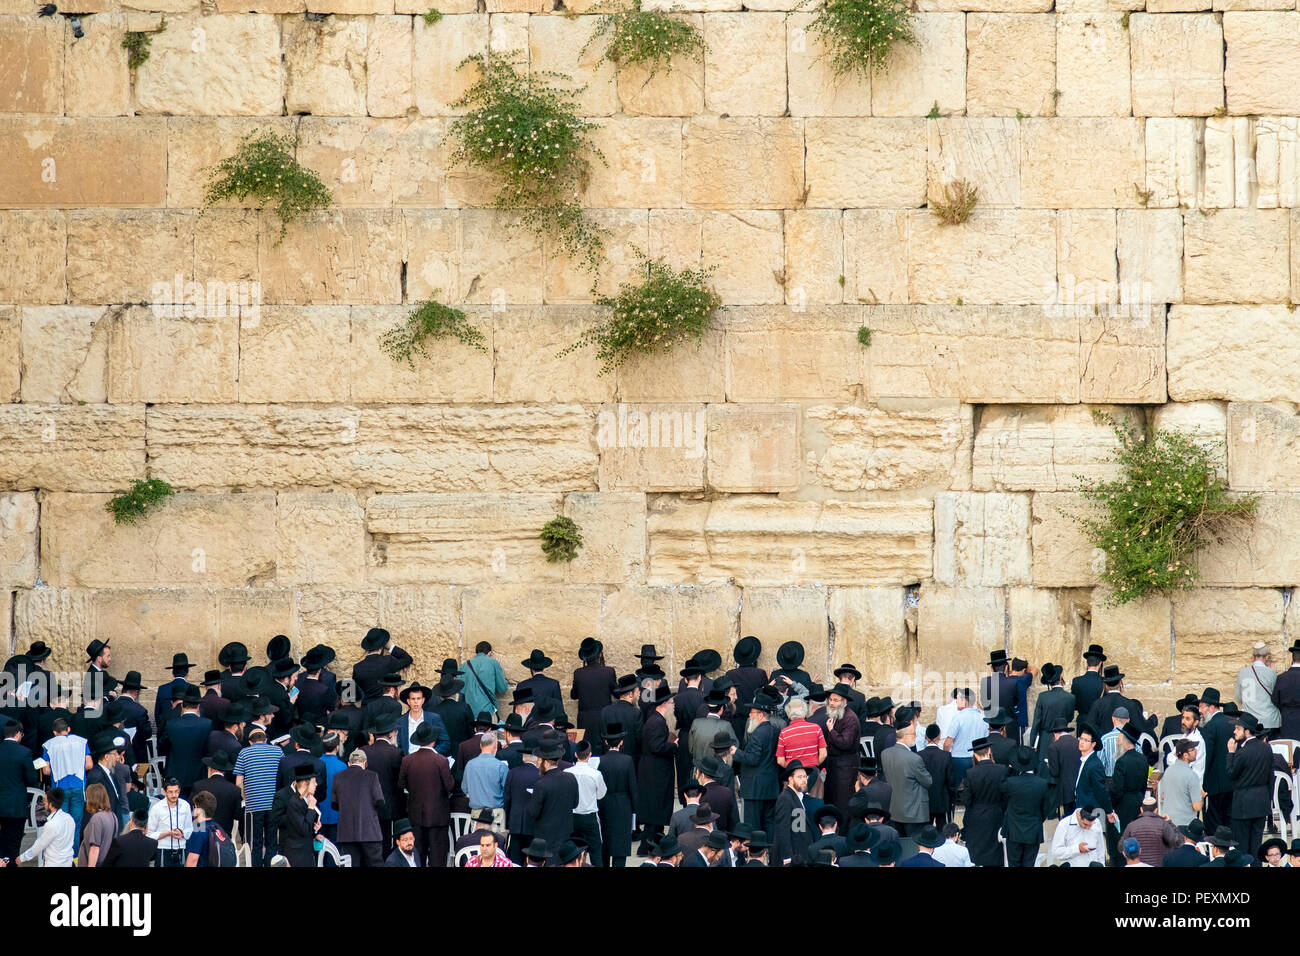 Jews praying at the Western Wall, Jerusalem, Israel - Stock Image